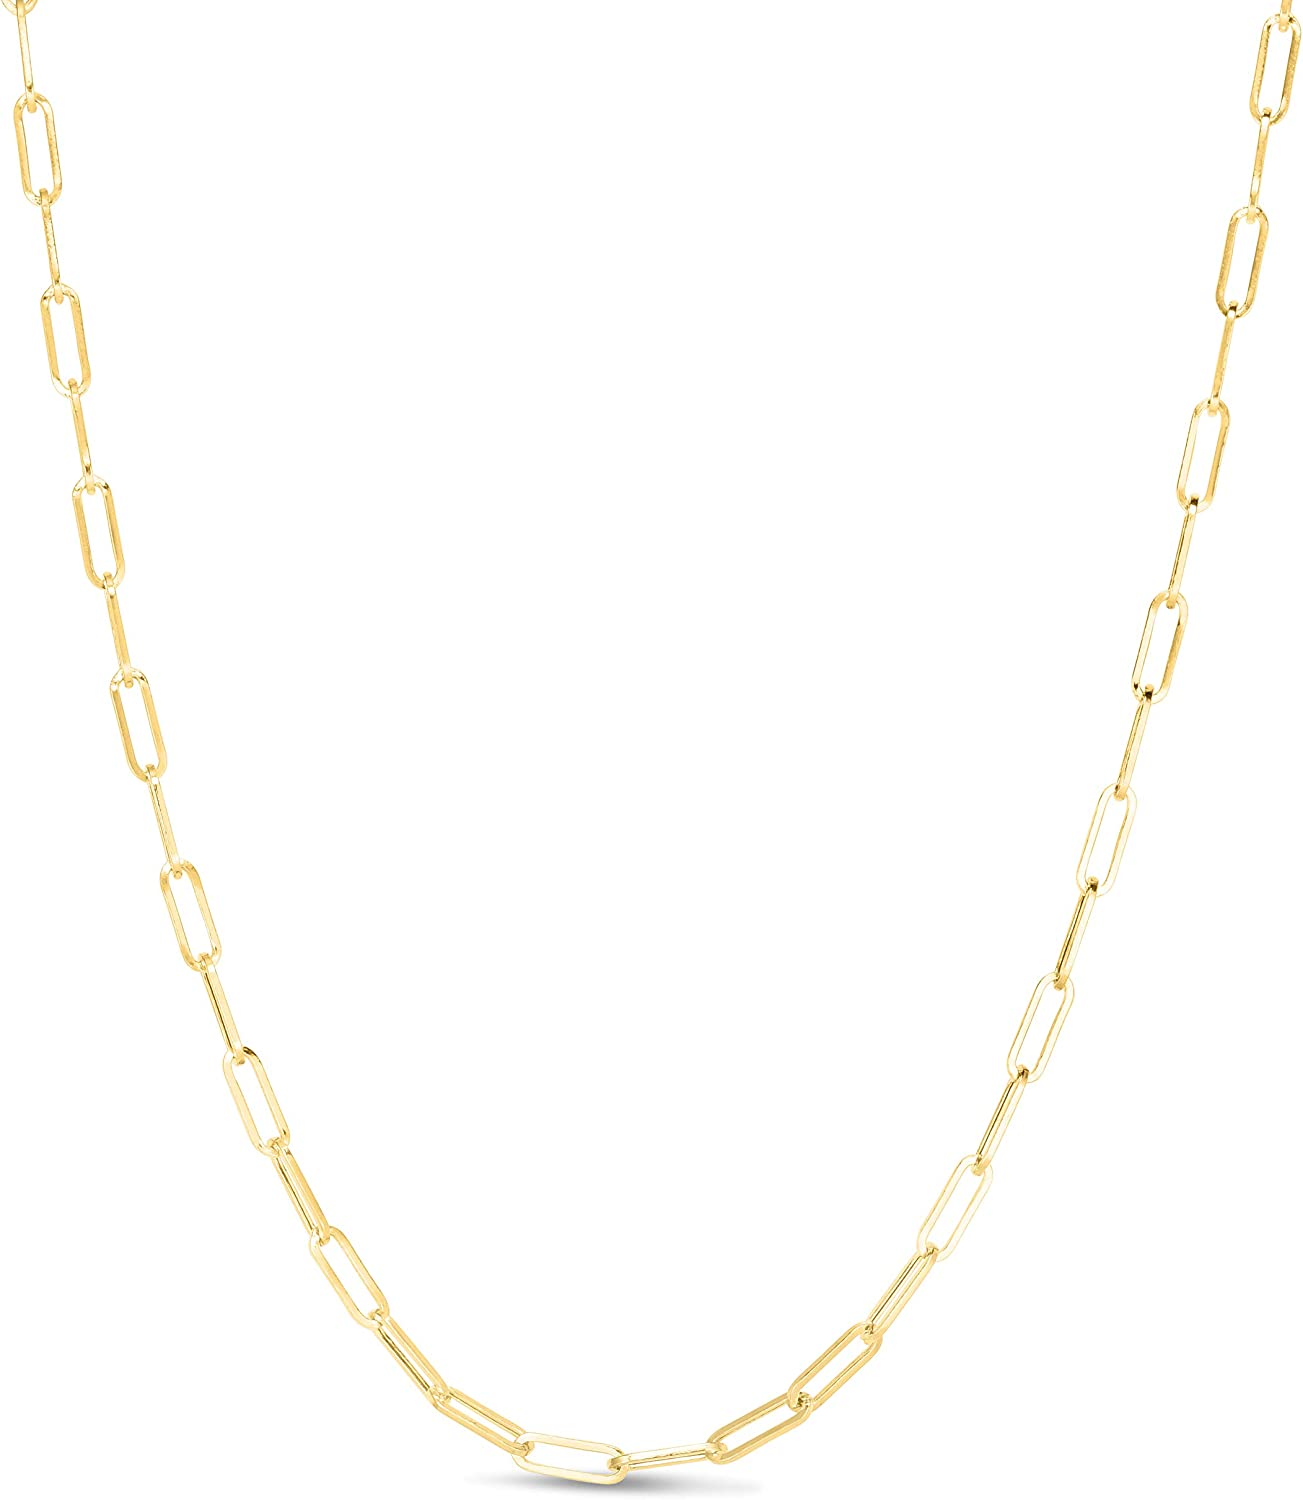 MCS Jewelry 14k Yellow Gold Paperclip Link Chain Necklace 3.3 mm (16